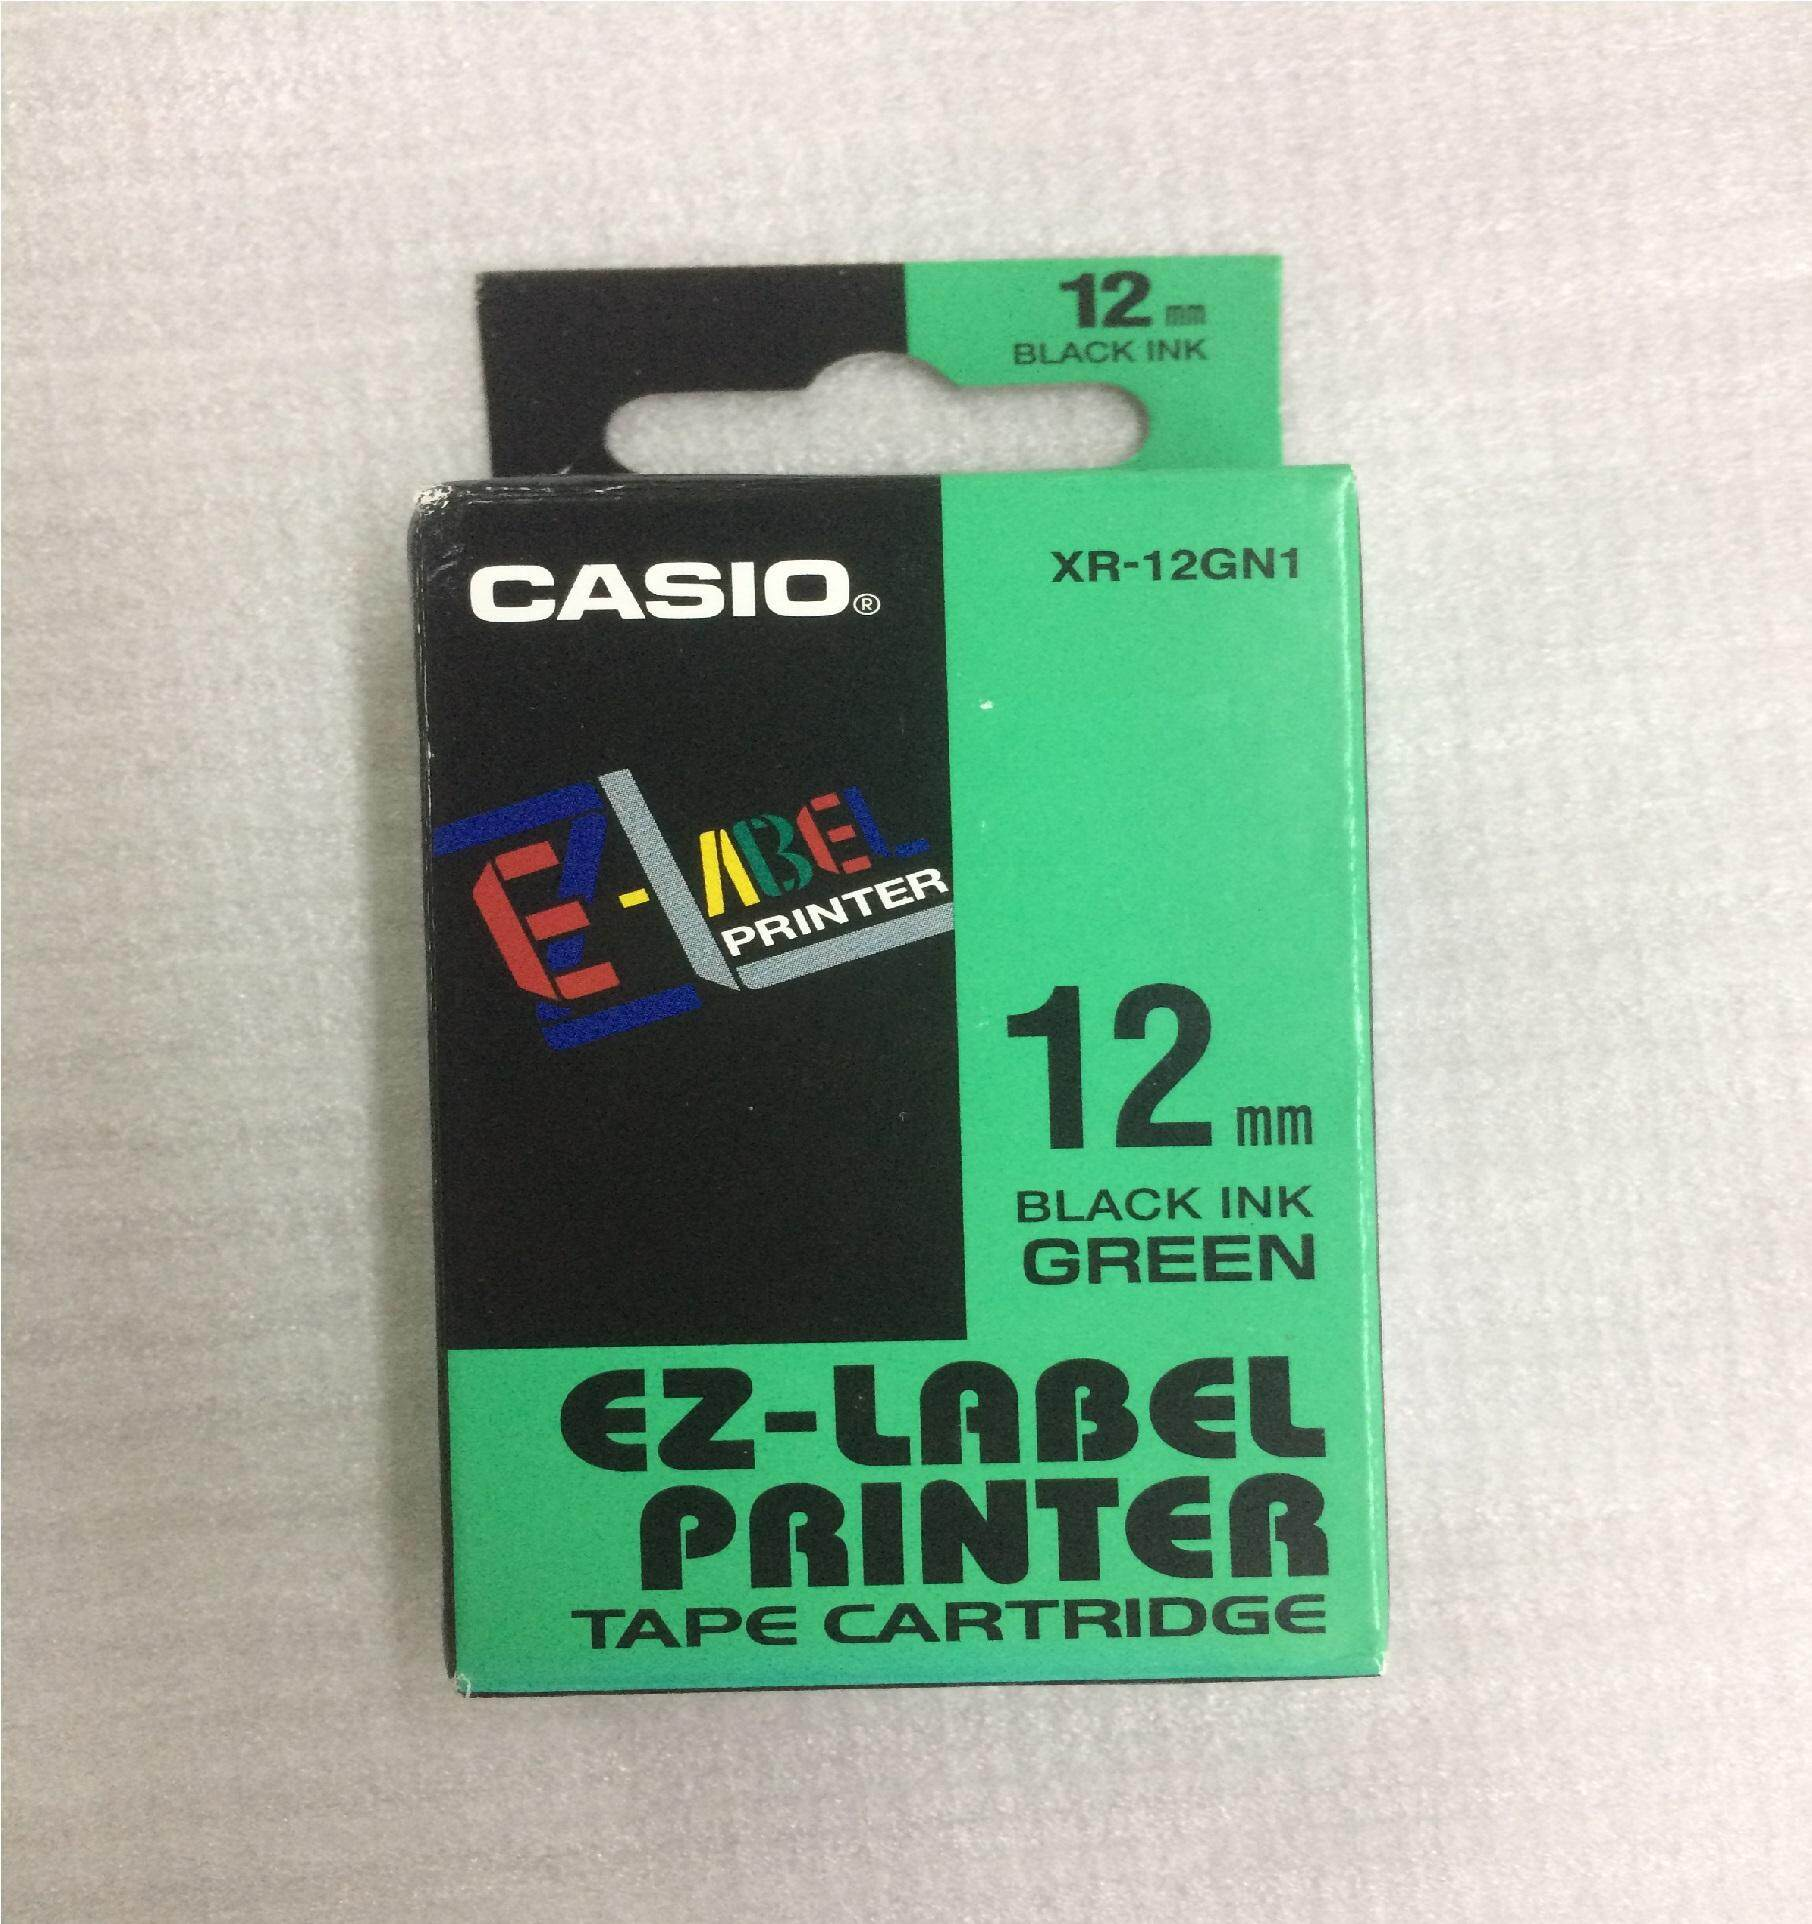 CASIO XR-12GN1 EZ-LABEL TAPE BLACK ON GREEN 12mm ORIGINAL